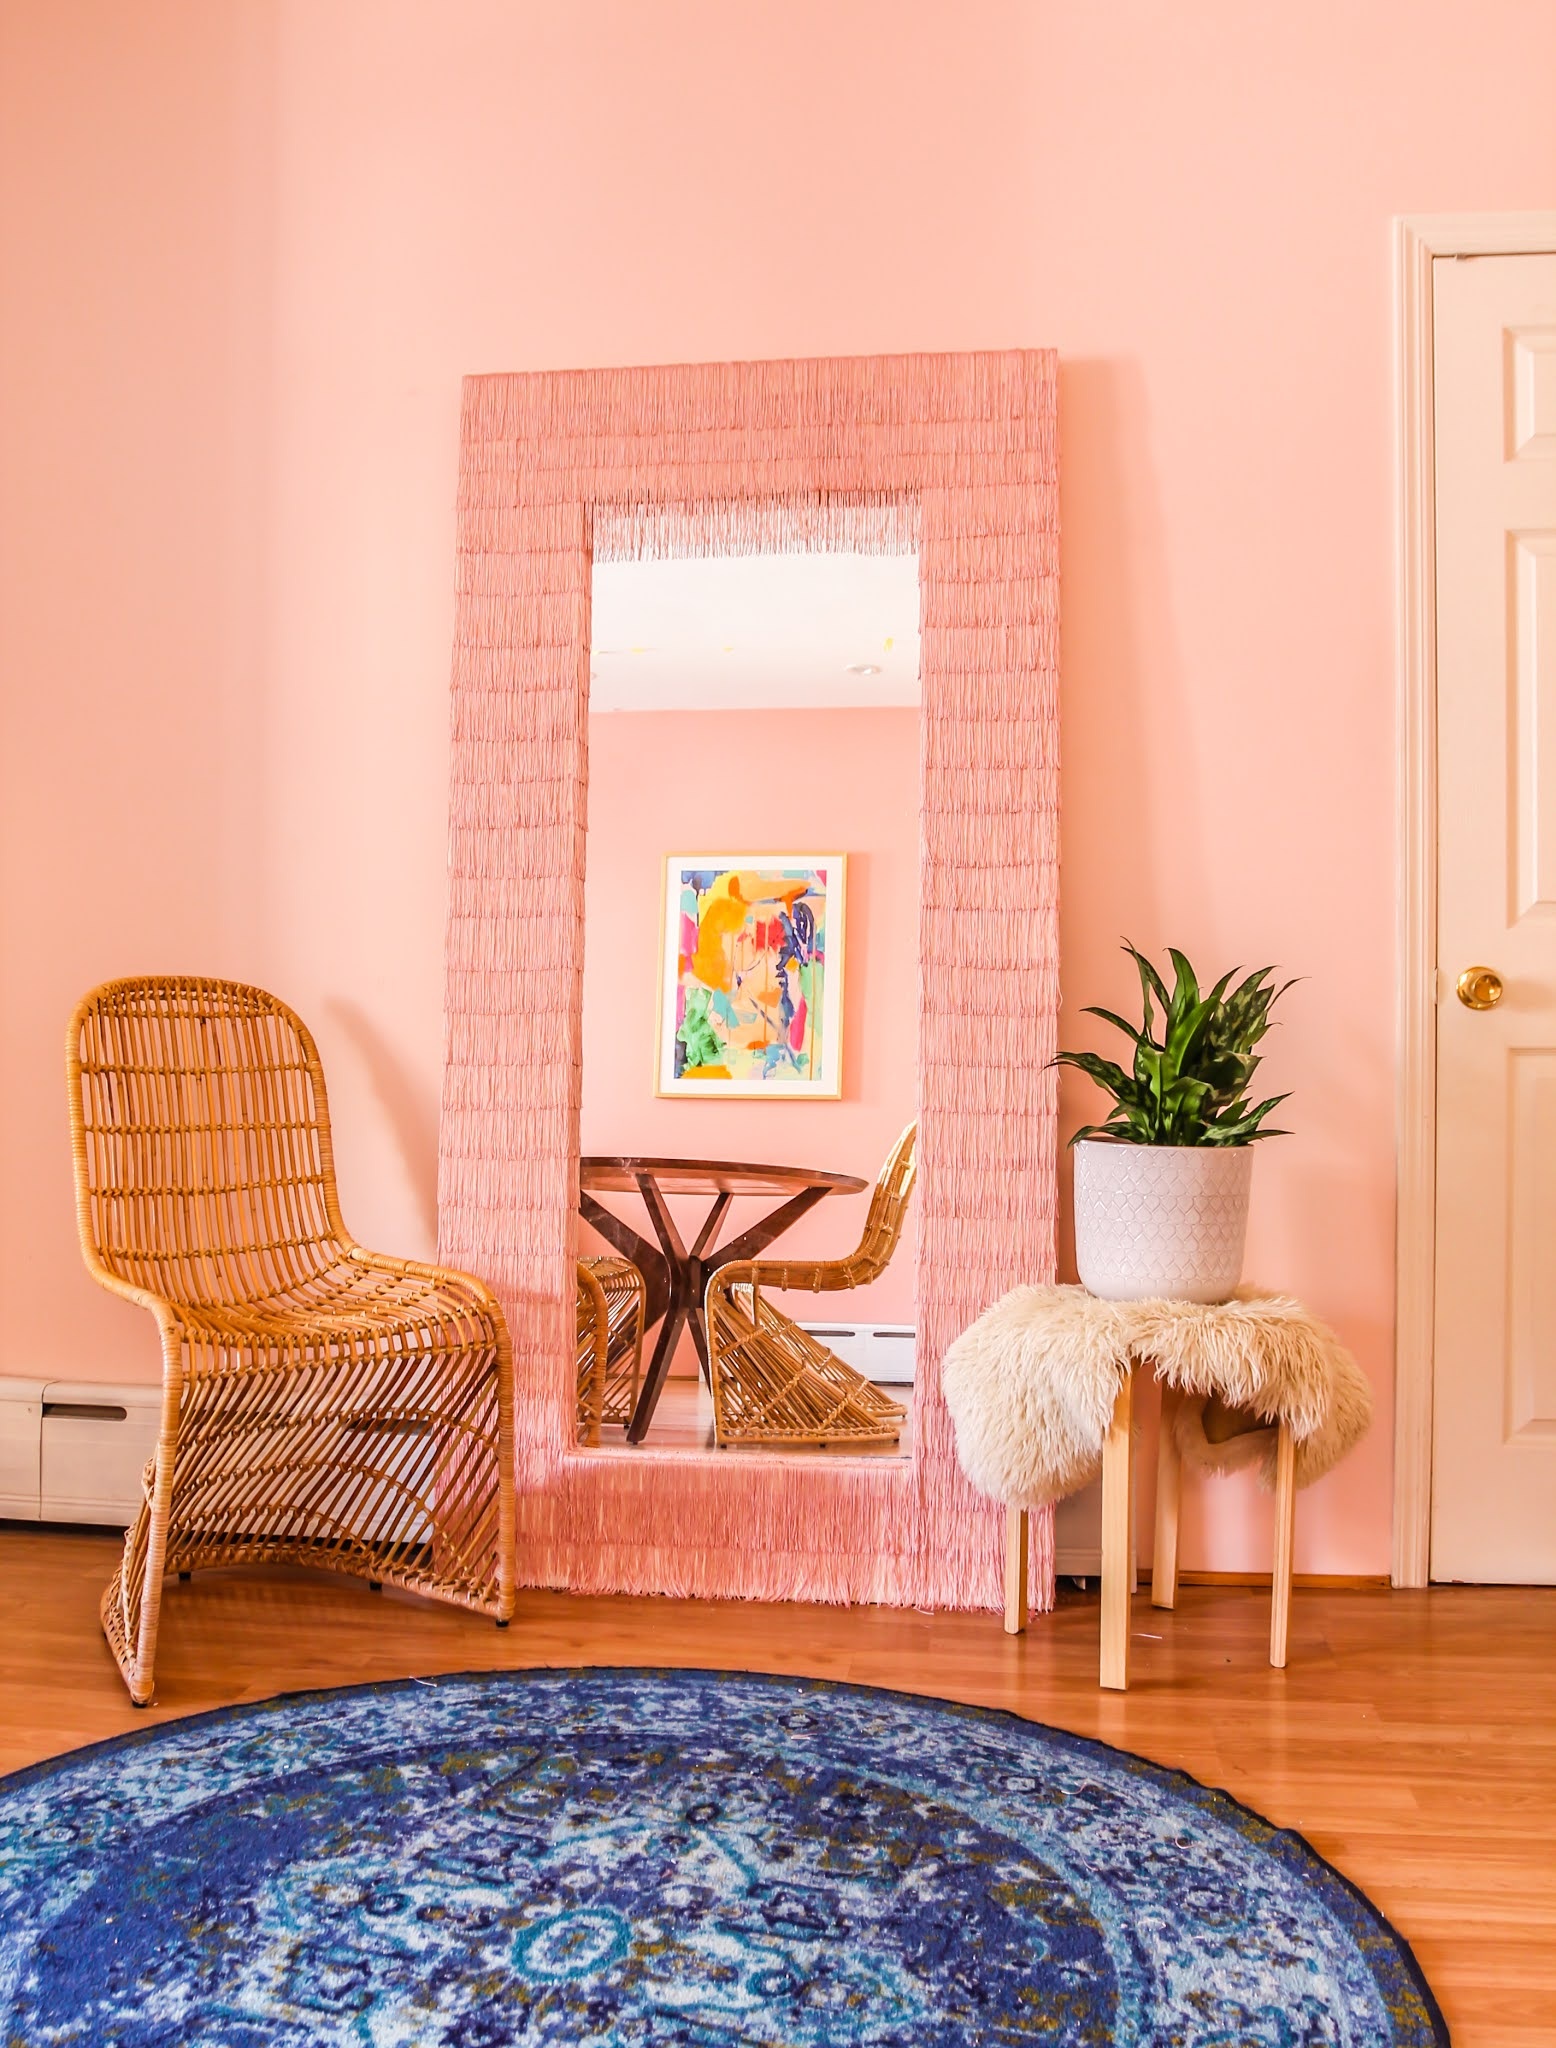 fringe mirror // tfdiaries fringe mirror // Megan Zietz // pink fringe mirror // chainette fringe mirror // floor mirrors // full length mirrors // selfie mirrors // ikea mongstad mirror hack // ikea mirror hack // ikea mirror hacks